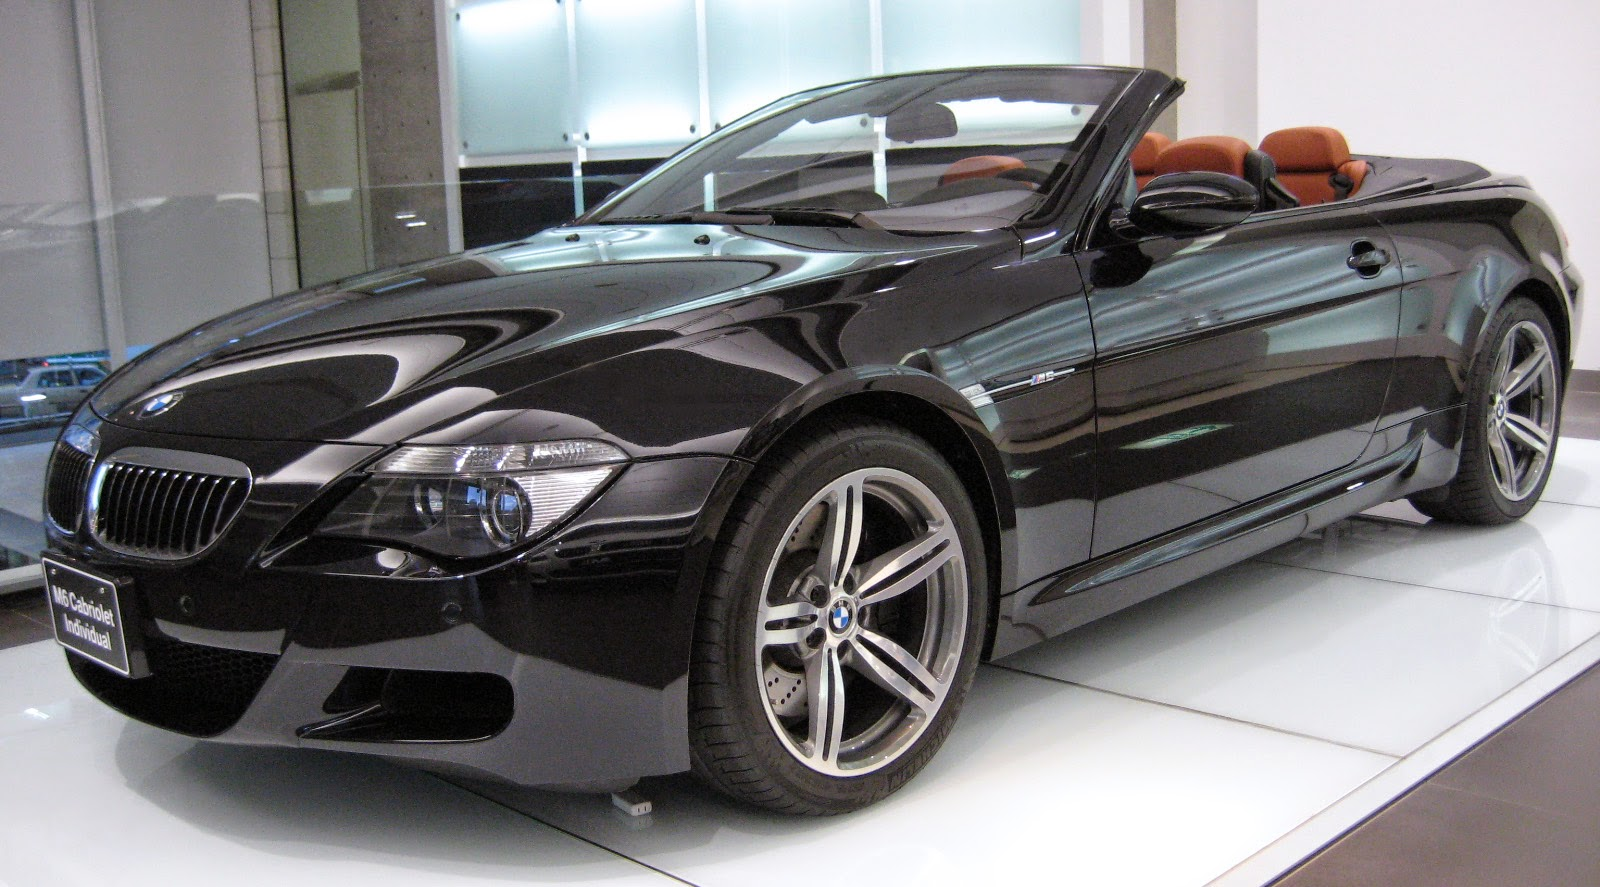 photos: BMW M6